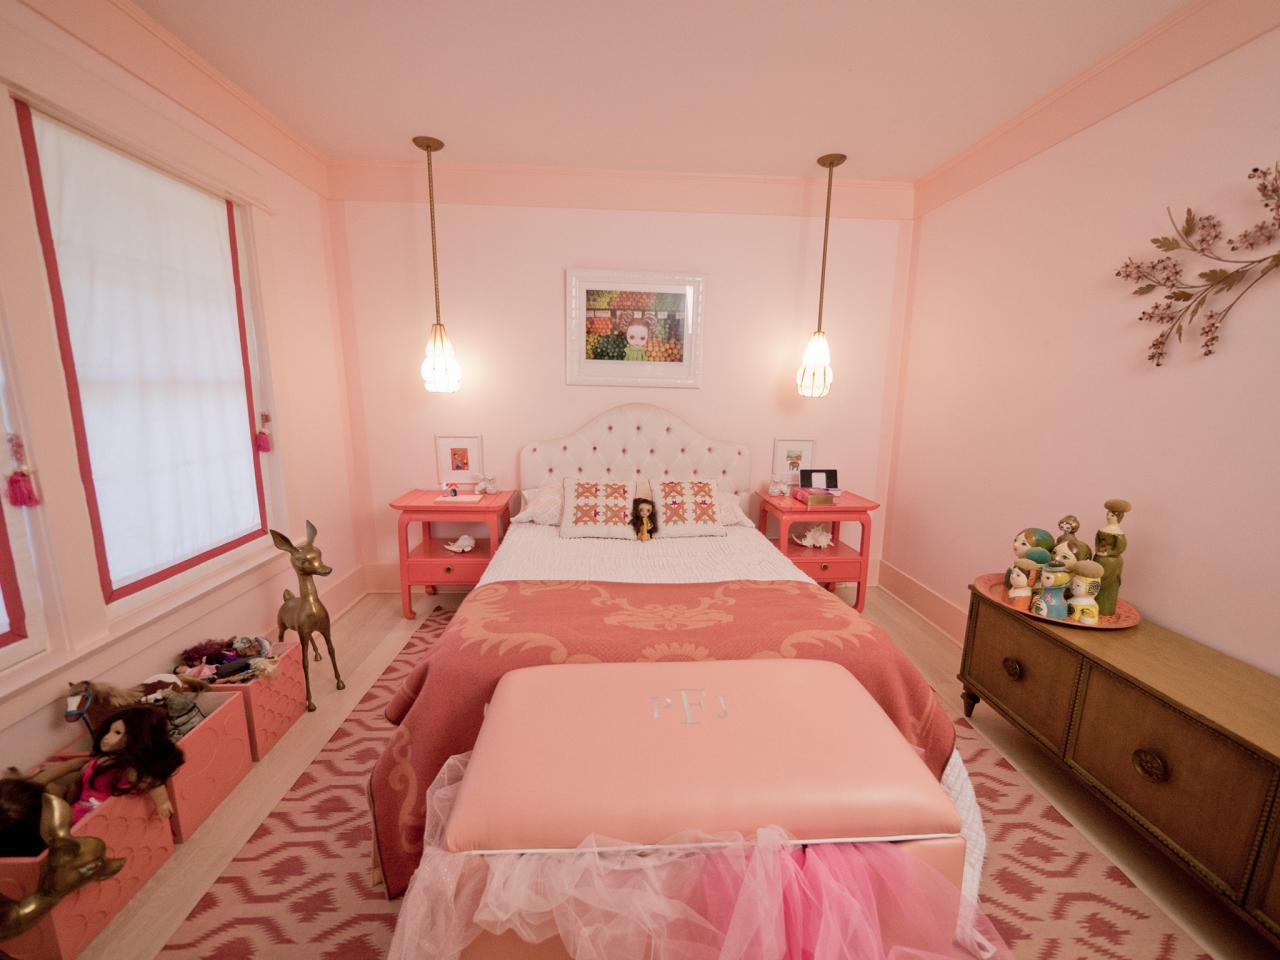 bedroom decorating ideas for 11 year olds